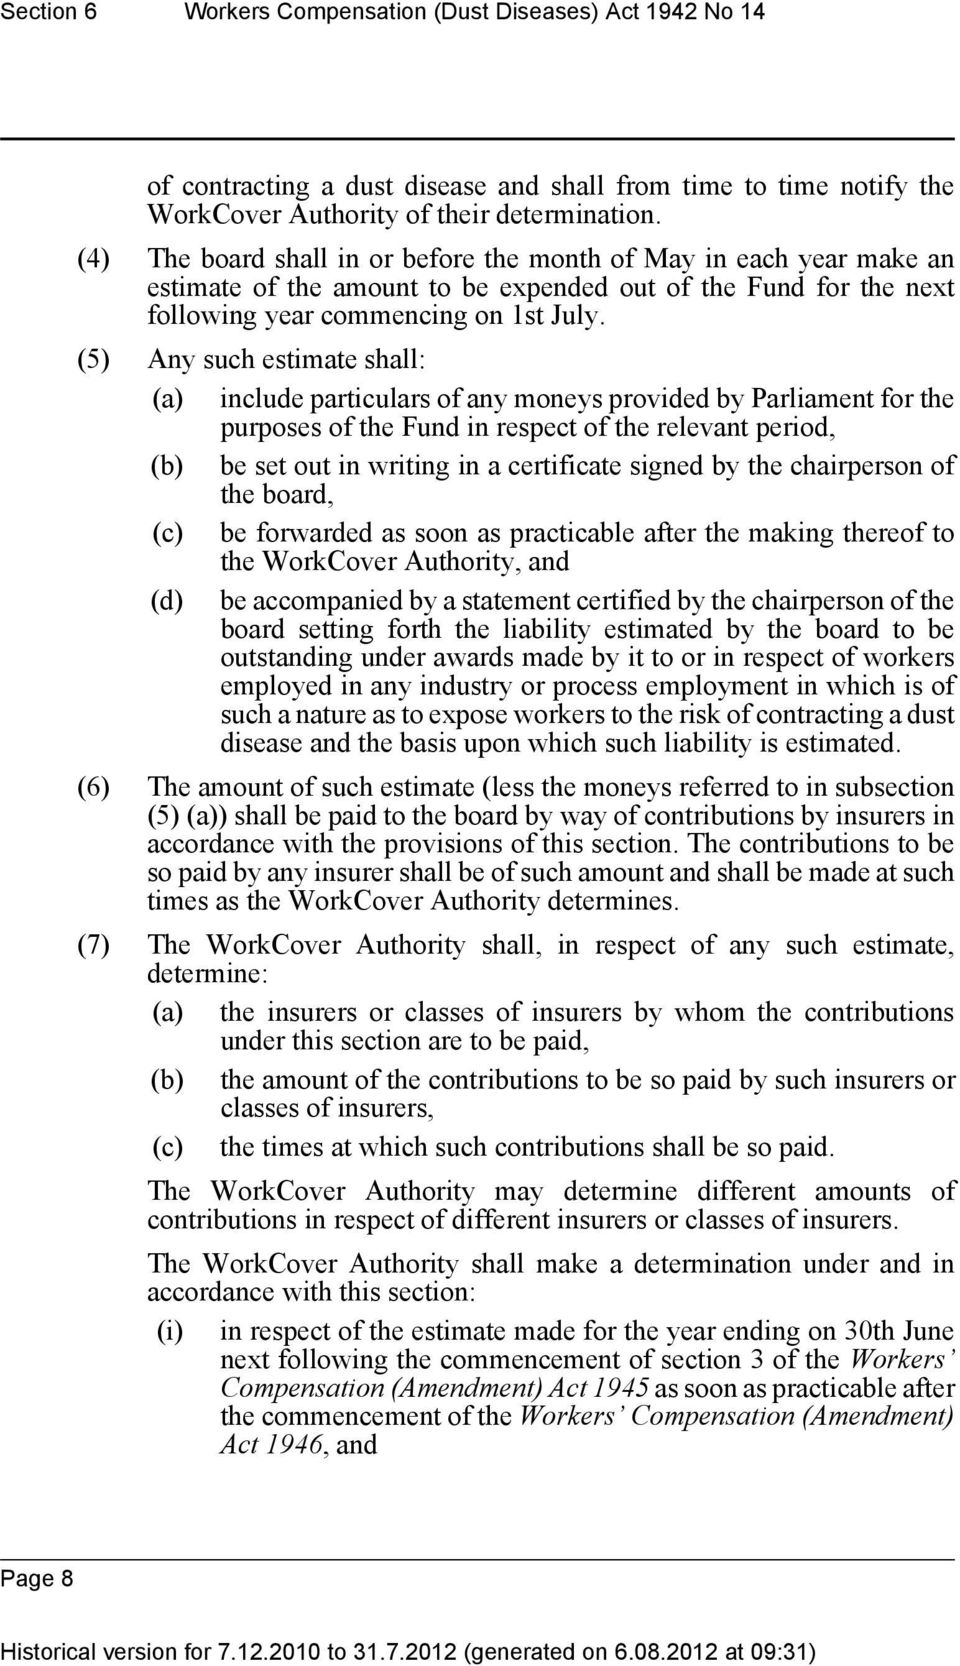 (5) Any such estimate shall: (a) include particulars of any moneys provided by Parliament for the purposes of the Fund in respect of the relevant period, (b) be set out in writing in a certificate